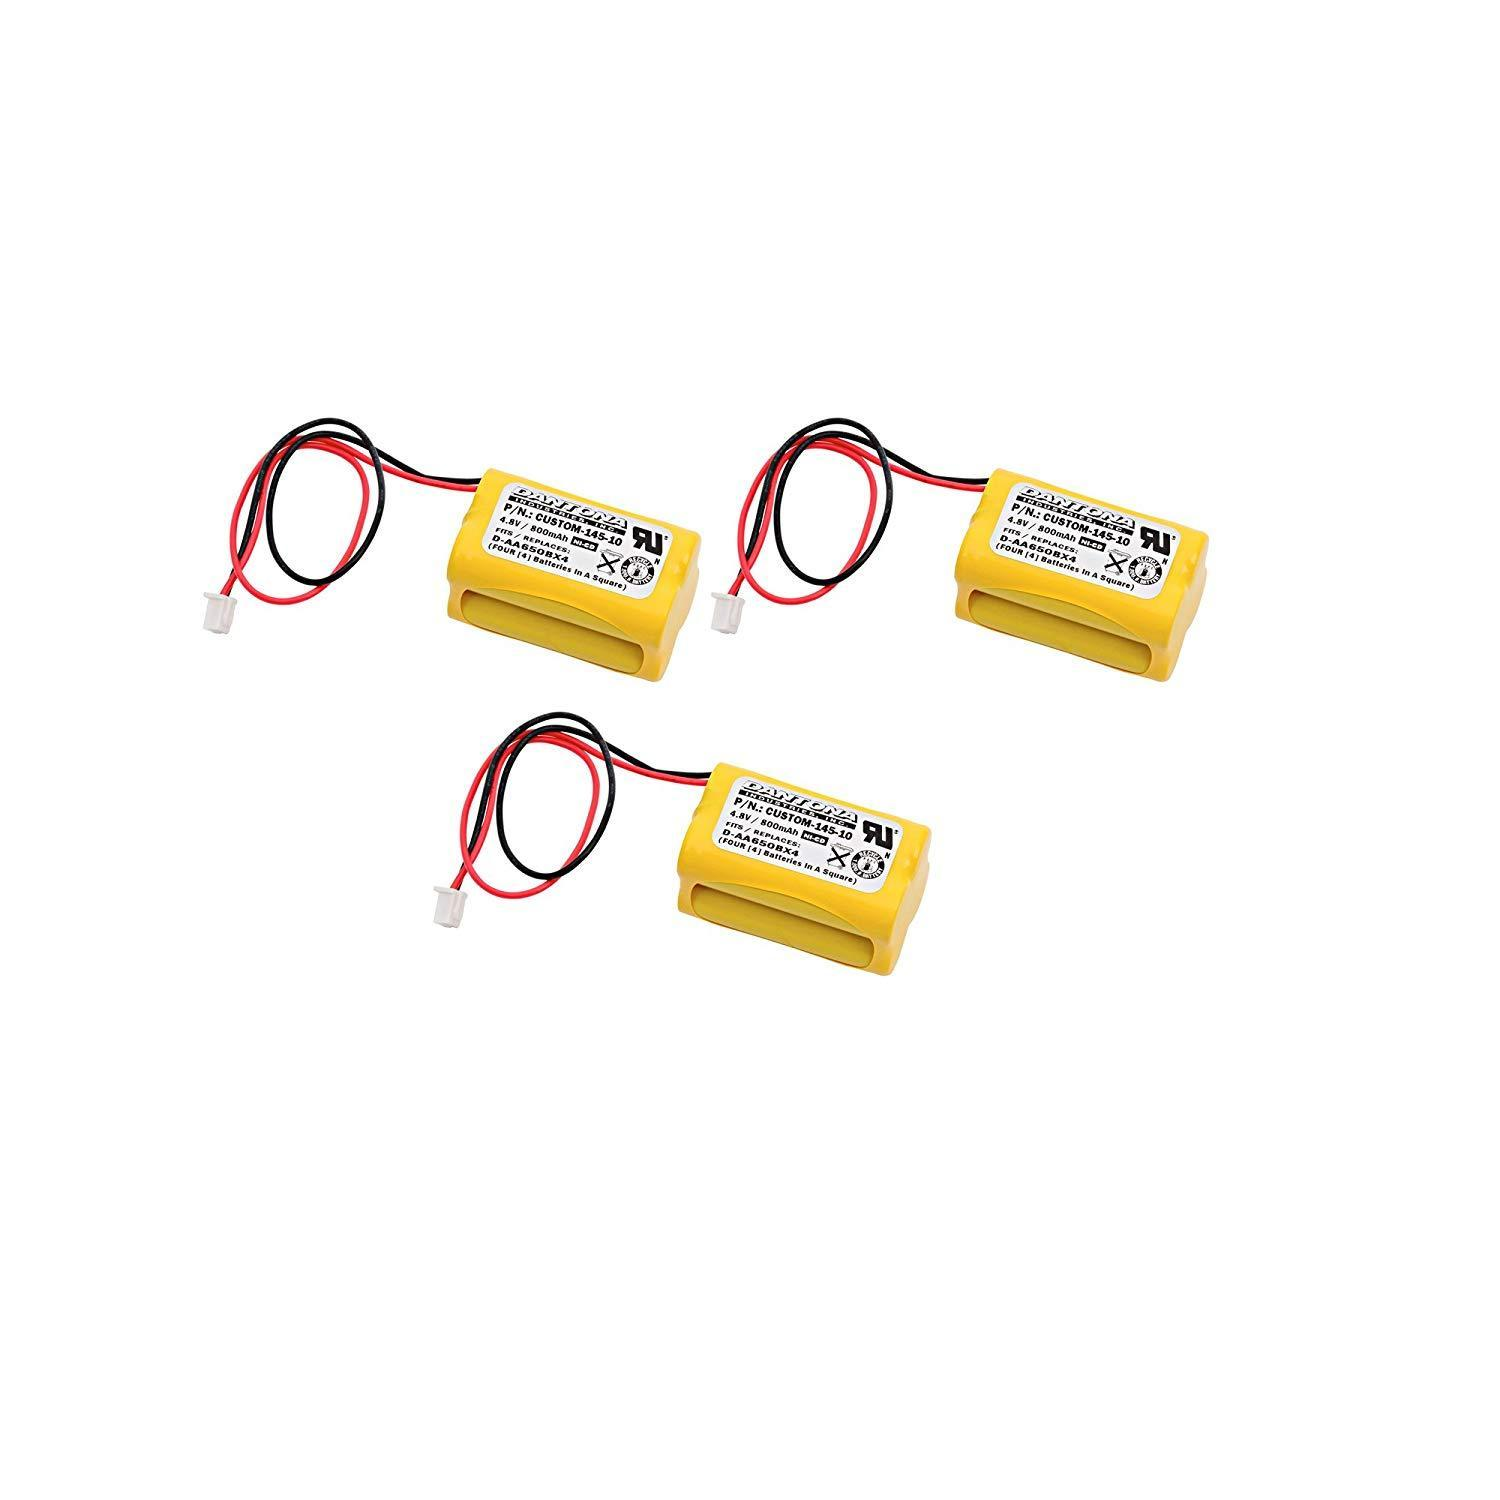 3pc Dantona Replacement 4.8 Volt 800 mAh Nickel Cadmium battery for All Fit - E1021R, Exell EBE-145-10 and more